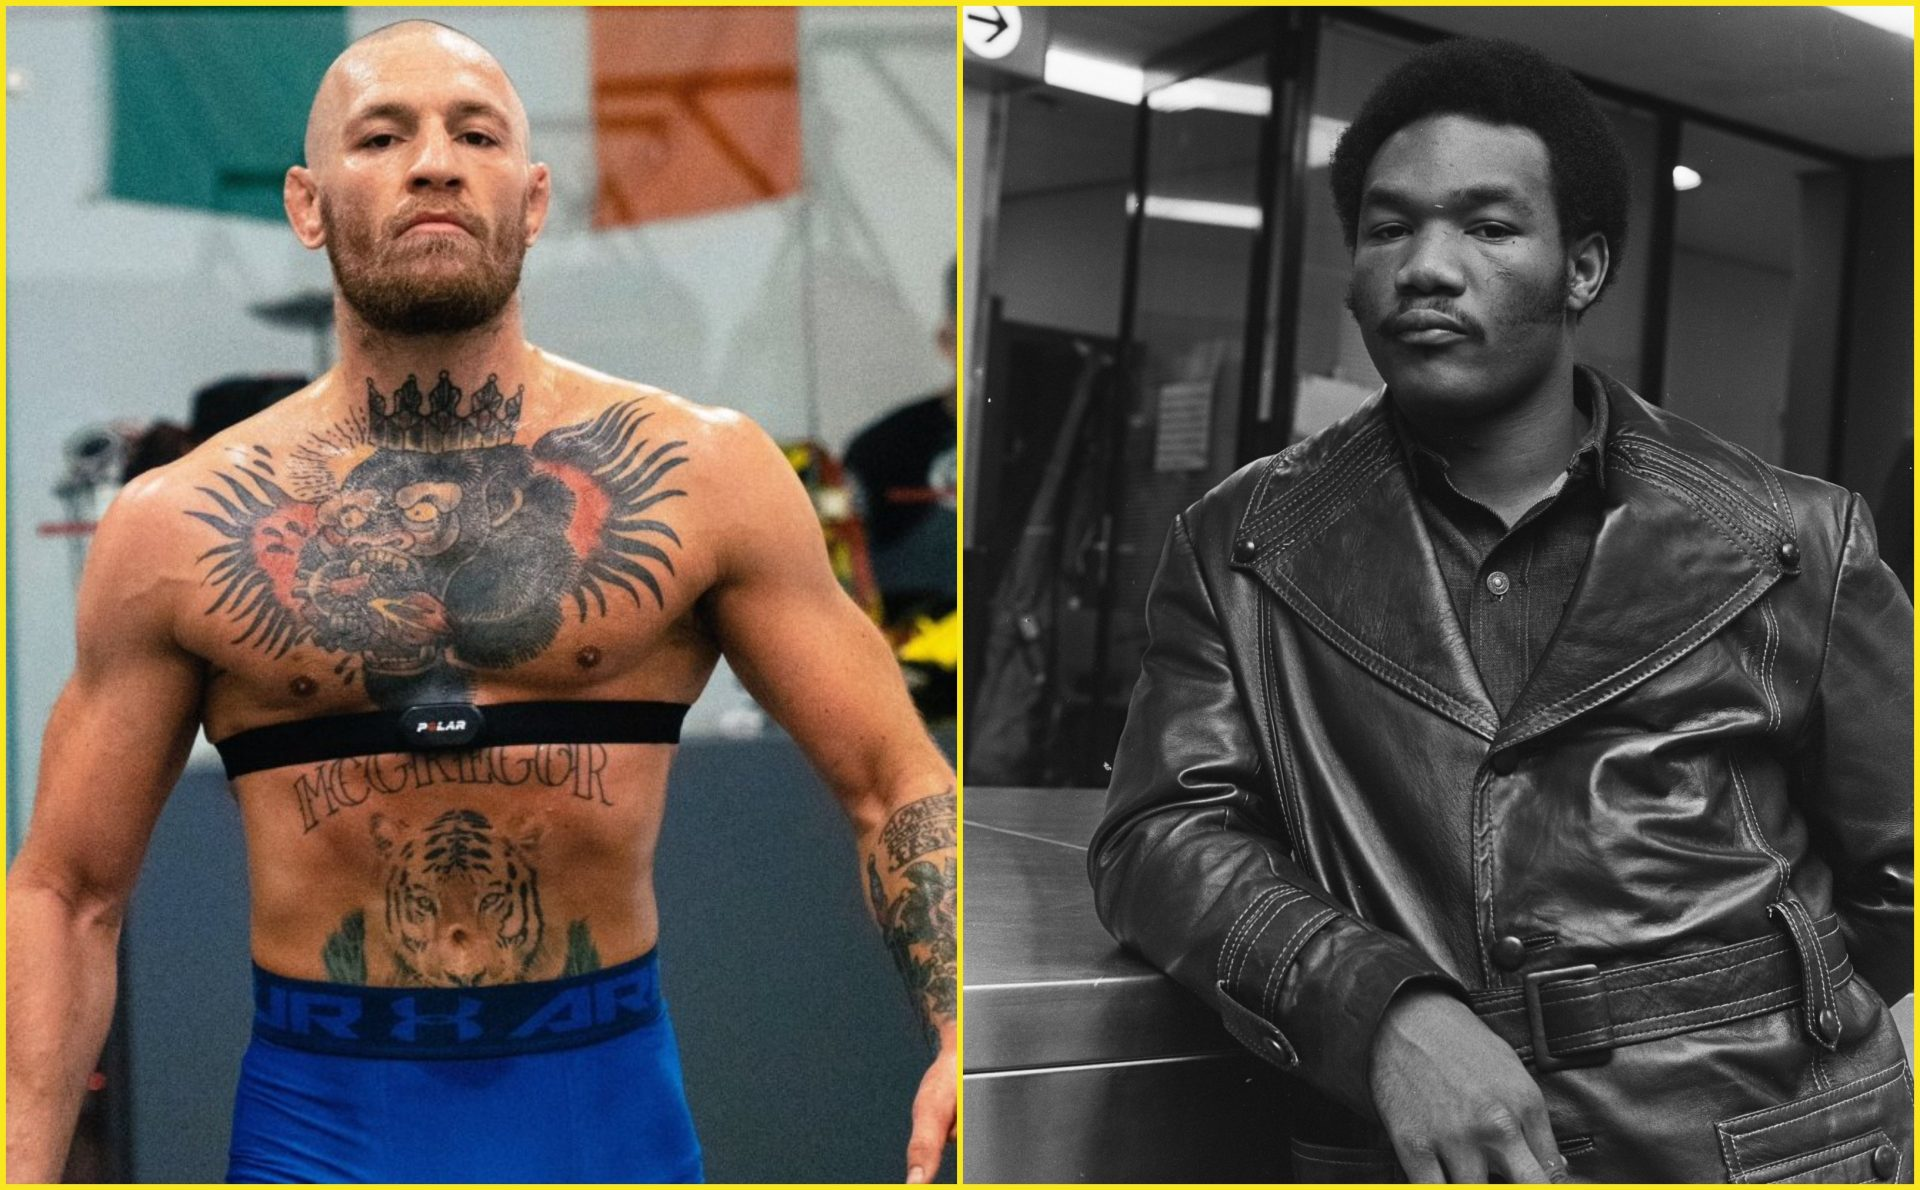 Boxing Legend George Foreman wants Conor McGregor to quit MMA and focus on Boxing - McGregor